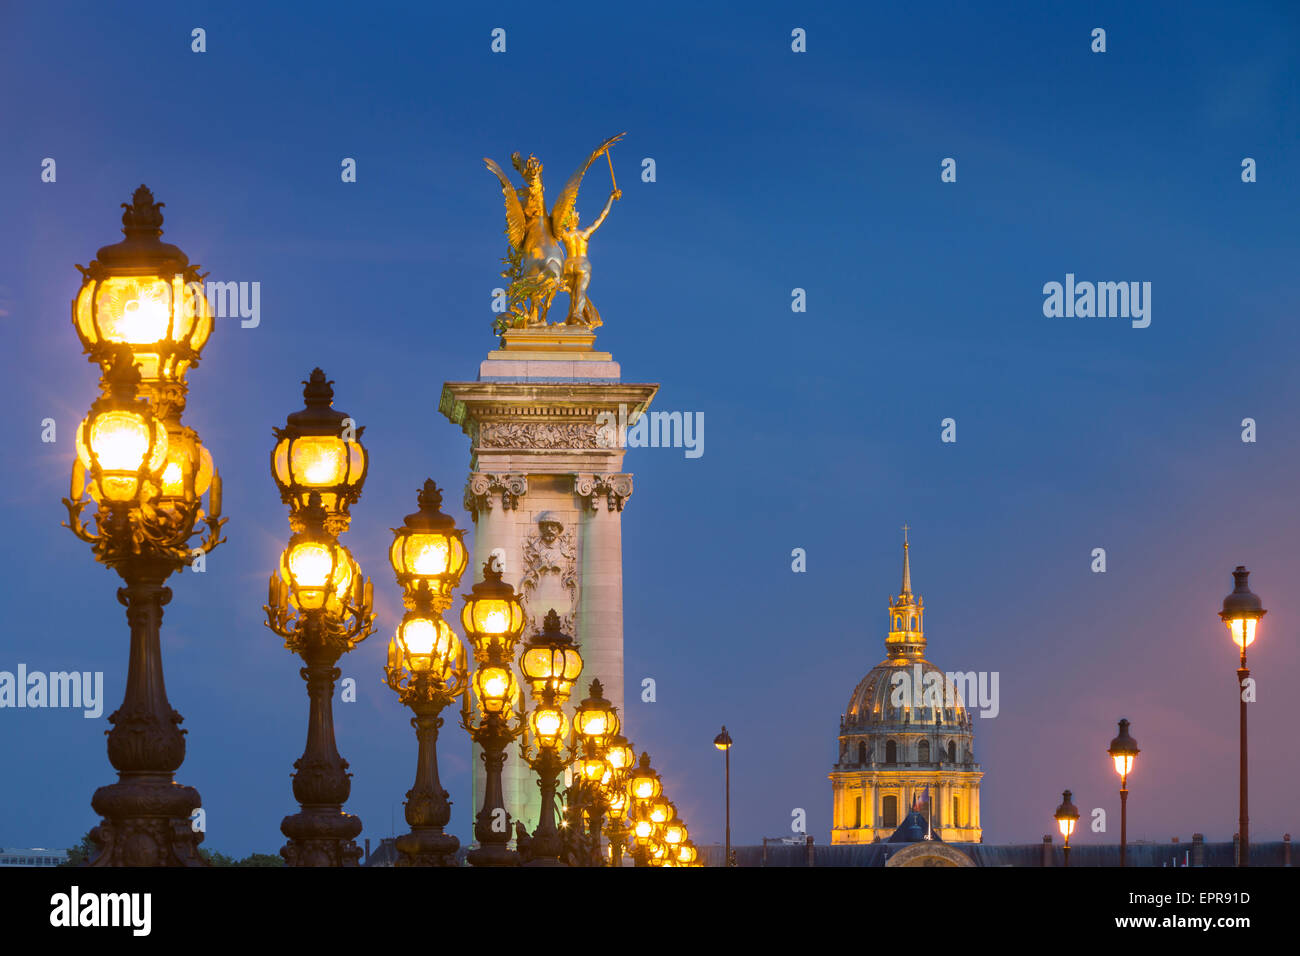 Row of lampposts along Pont Alexandre III with dome of Hotel des Invalides beyond, Paris, France Stock Photo